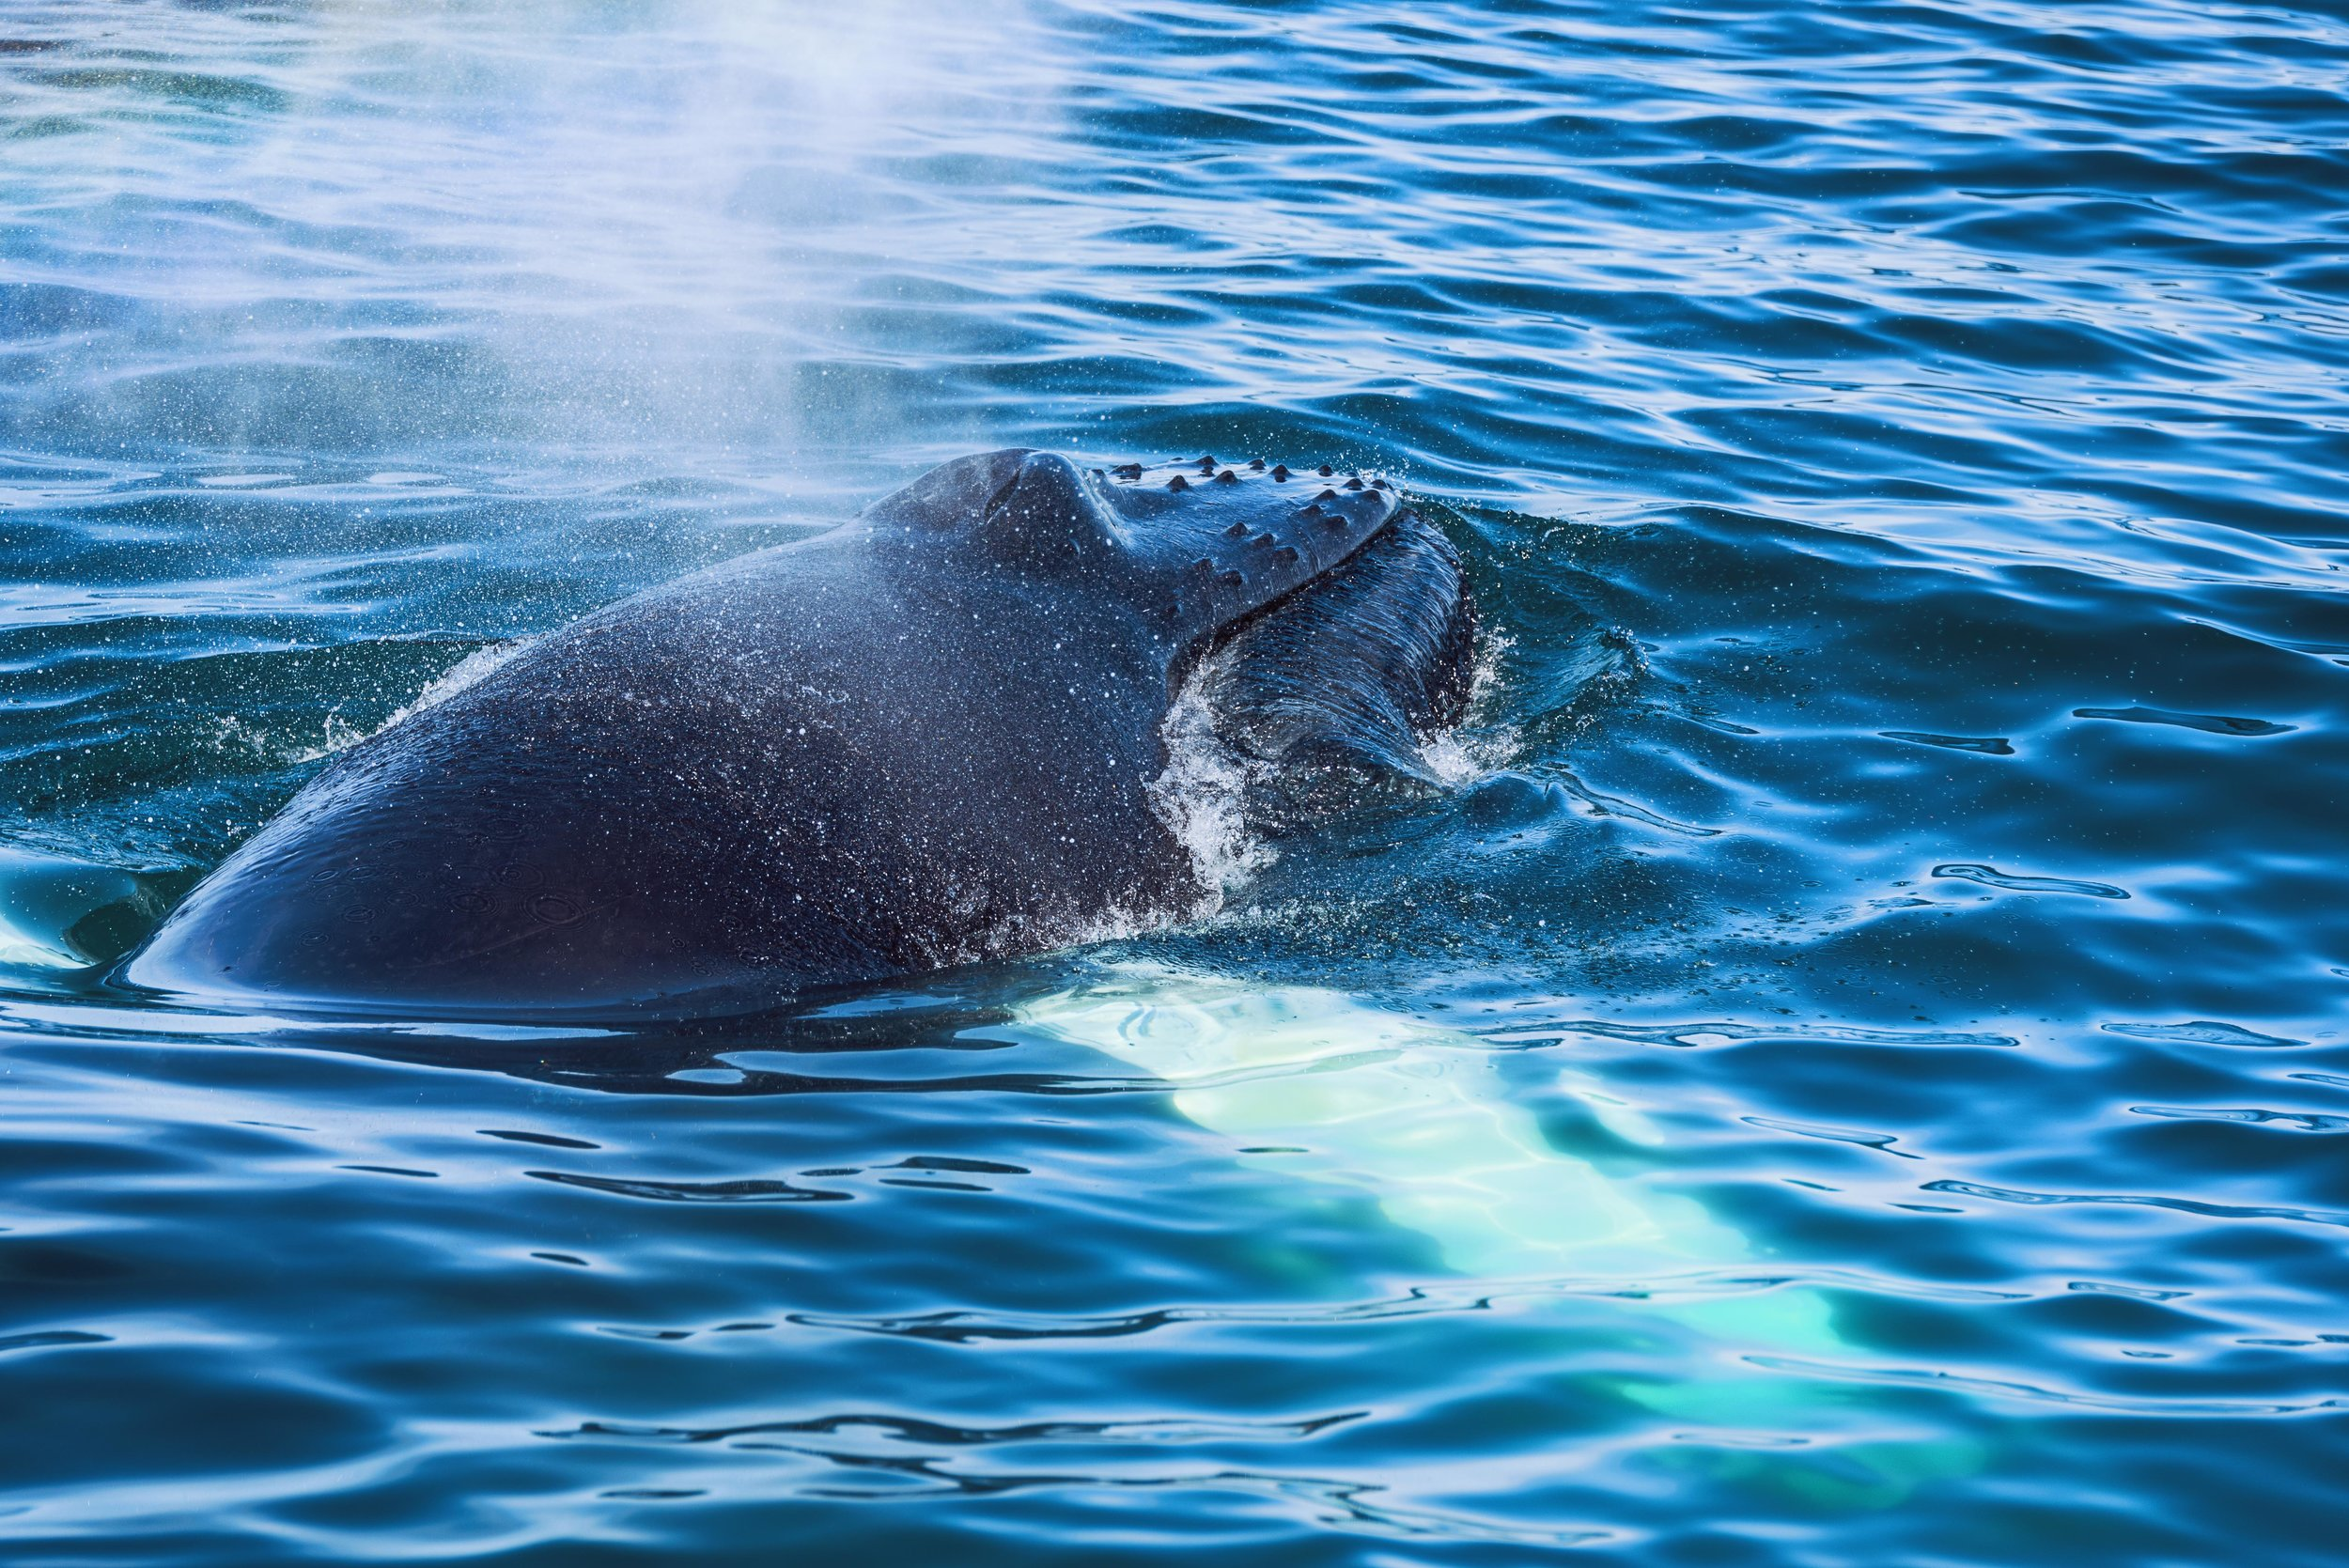 A humpback whale catching a breath of air at the surface